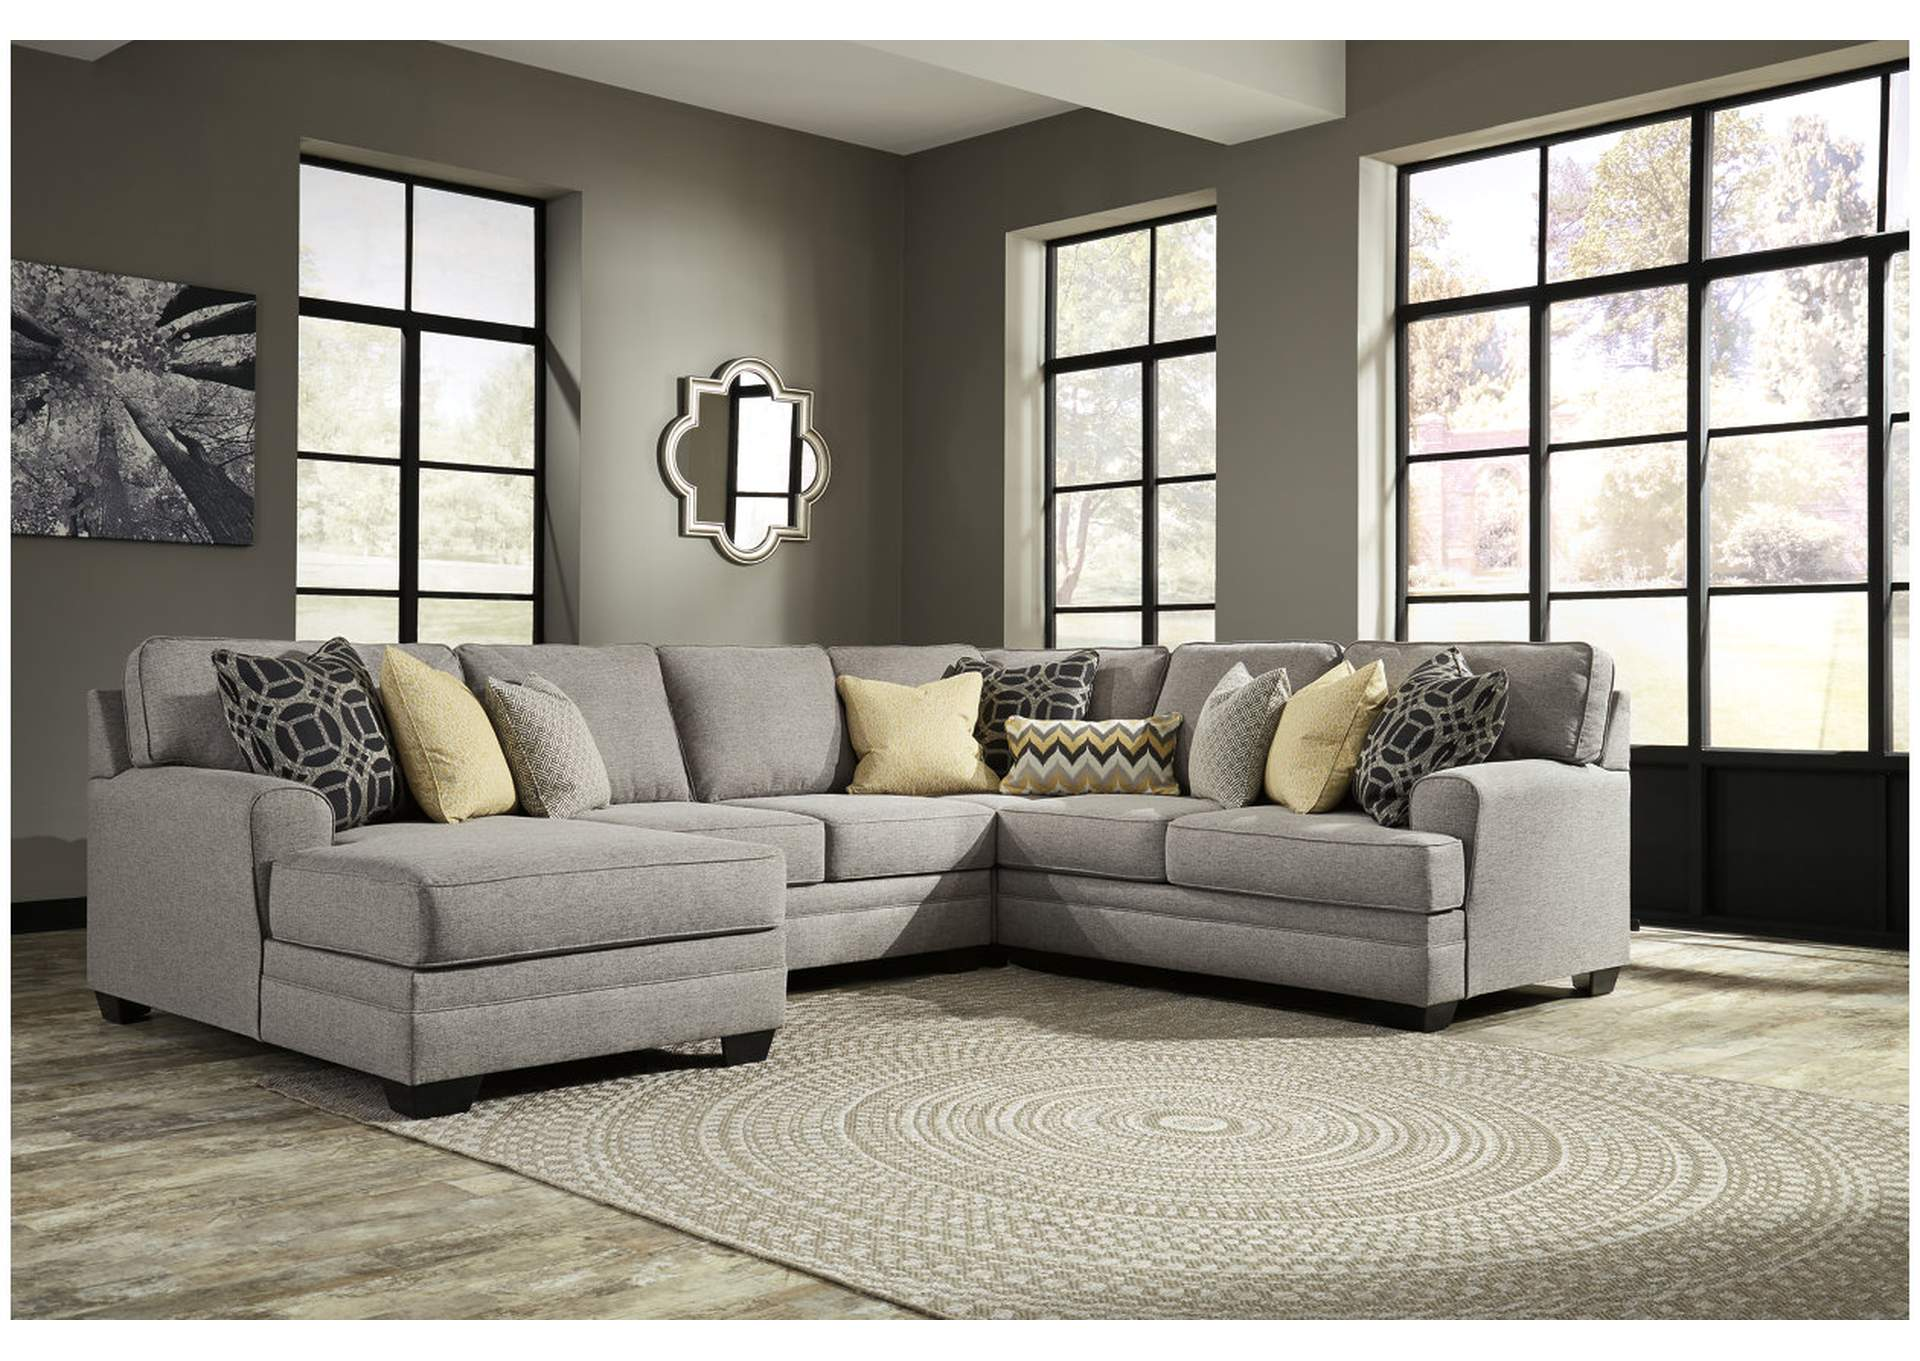 Brothers Fine Furniture Cresson Pewter Left Facing Corner Chaise Loveseat  Sectional